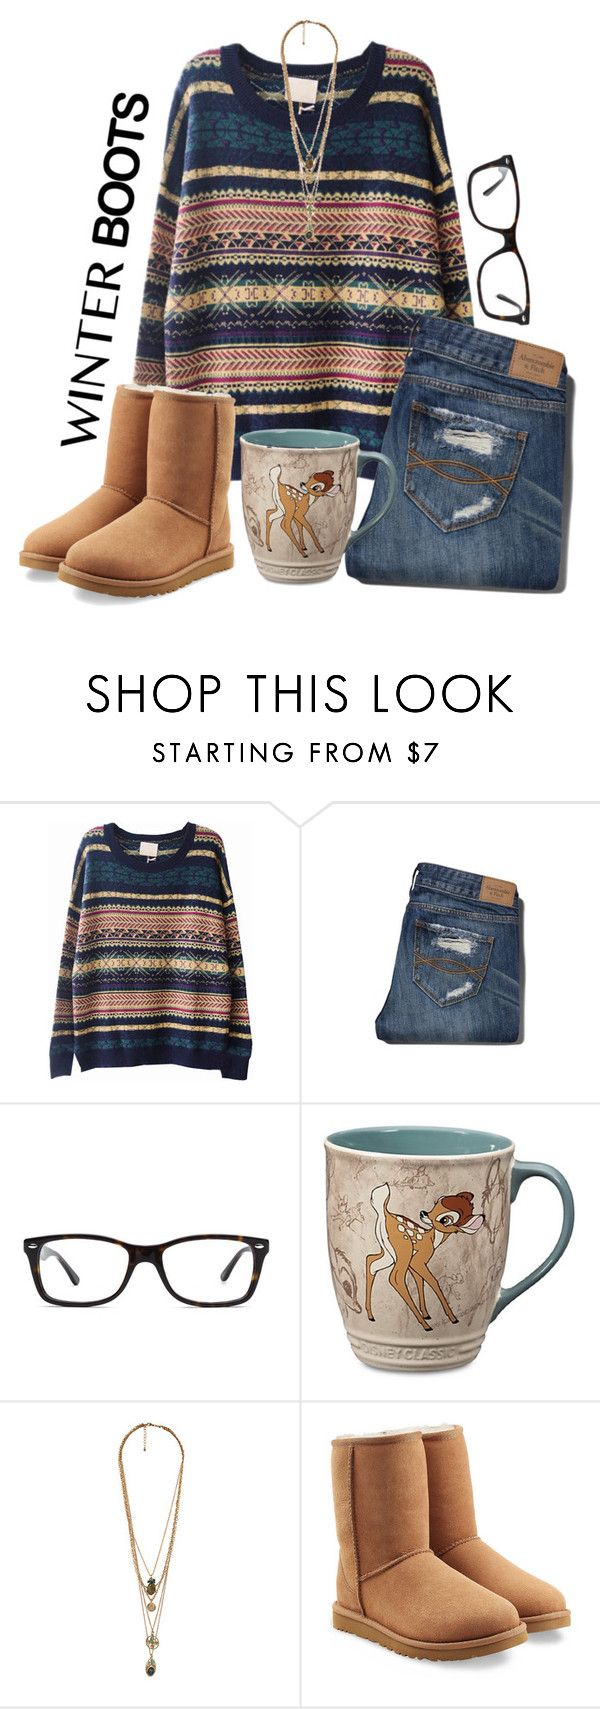 """""""winter boots"""" by thesingingmermaid ❤ liked on Polyvore featuring Abercrombie & Fitch, Ray-Ban, Disney, Forever 21, UGG Australia, Winter, Hipster, indie, sweaters and winterboots"""